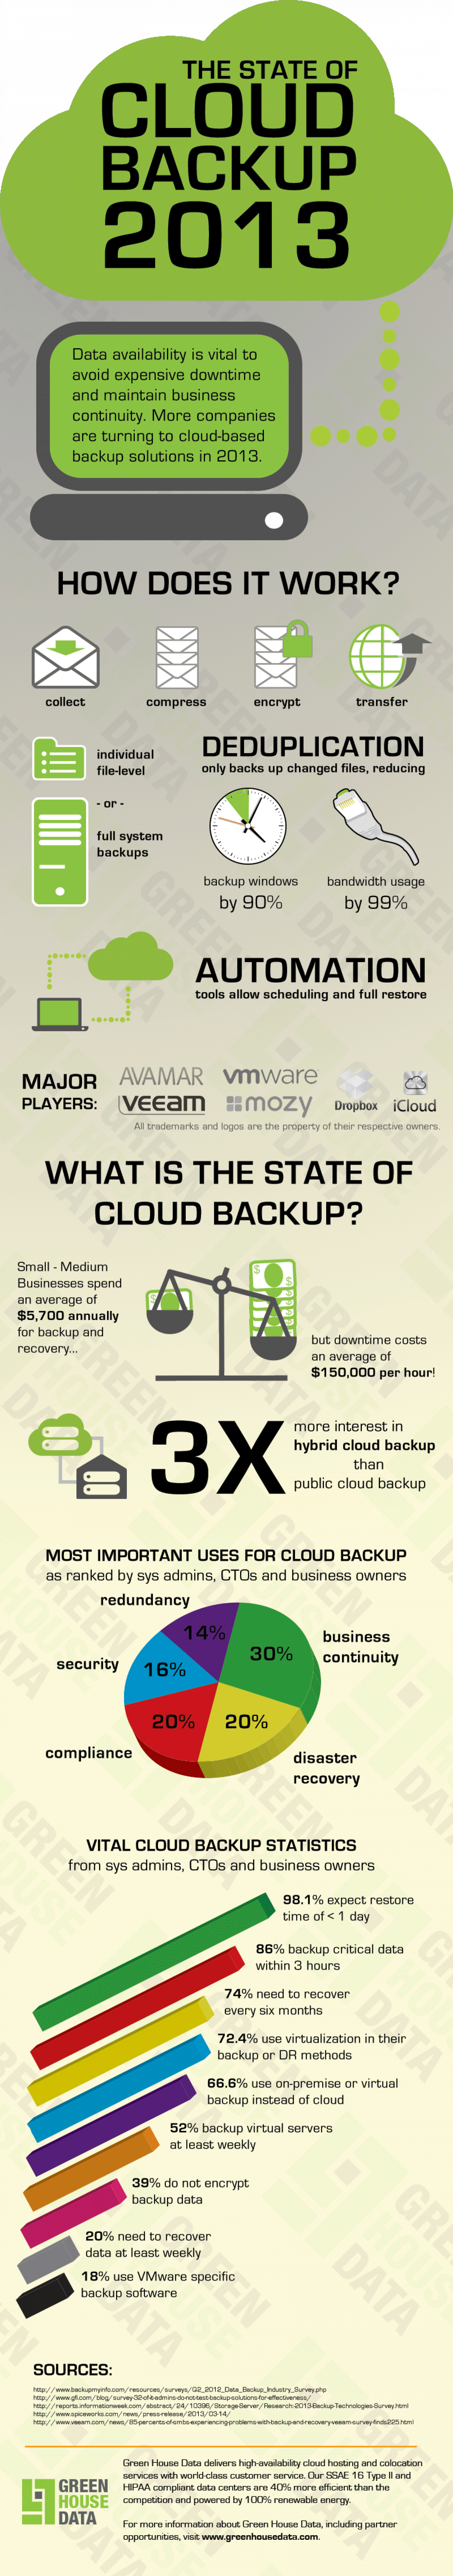 The State of Cloud Backup 2013 Infographic